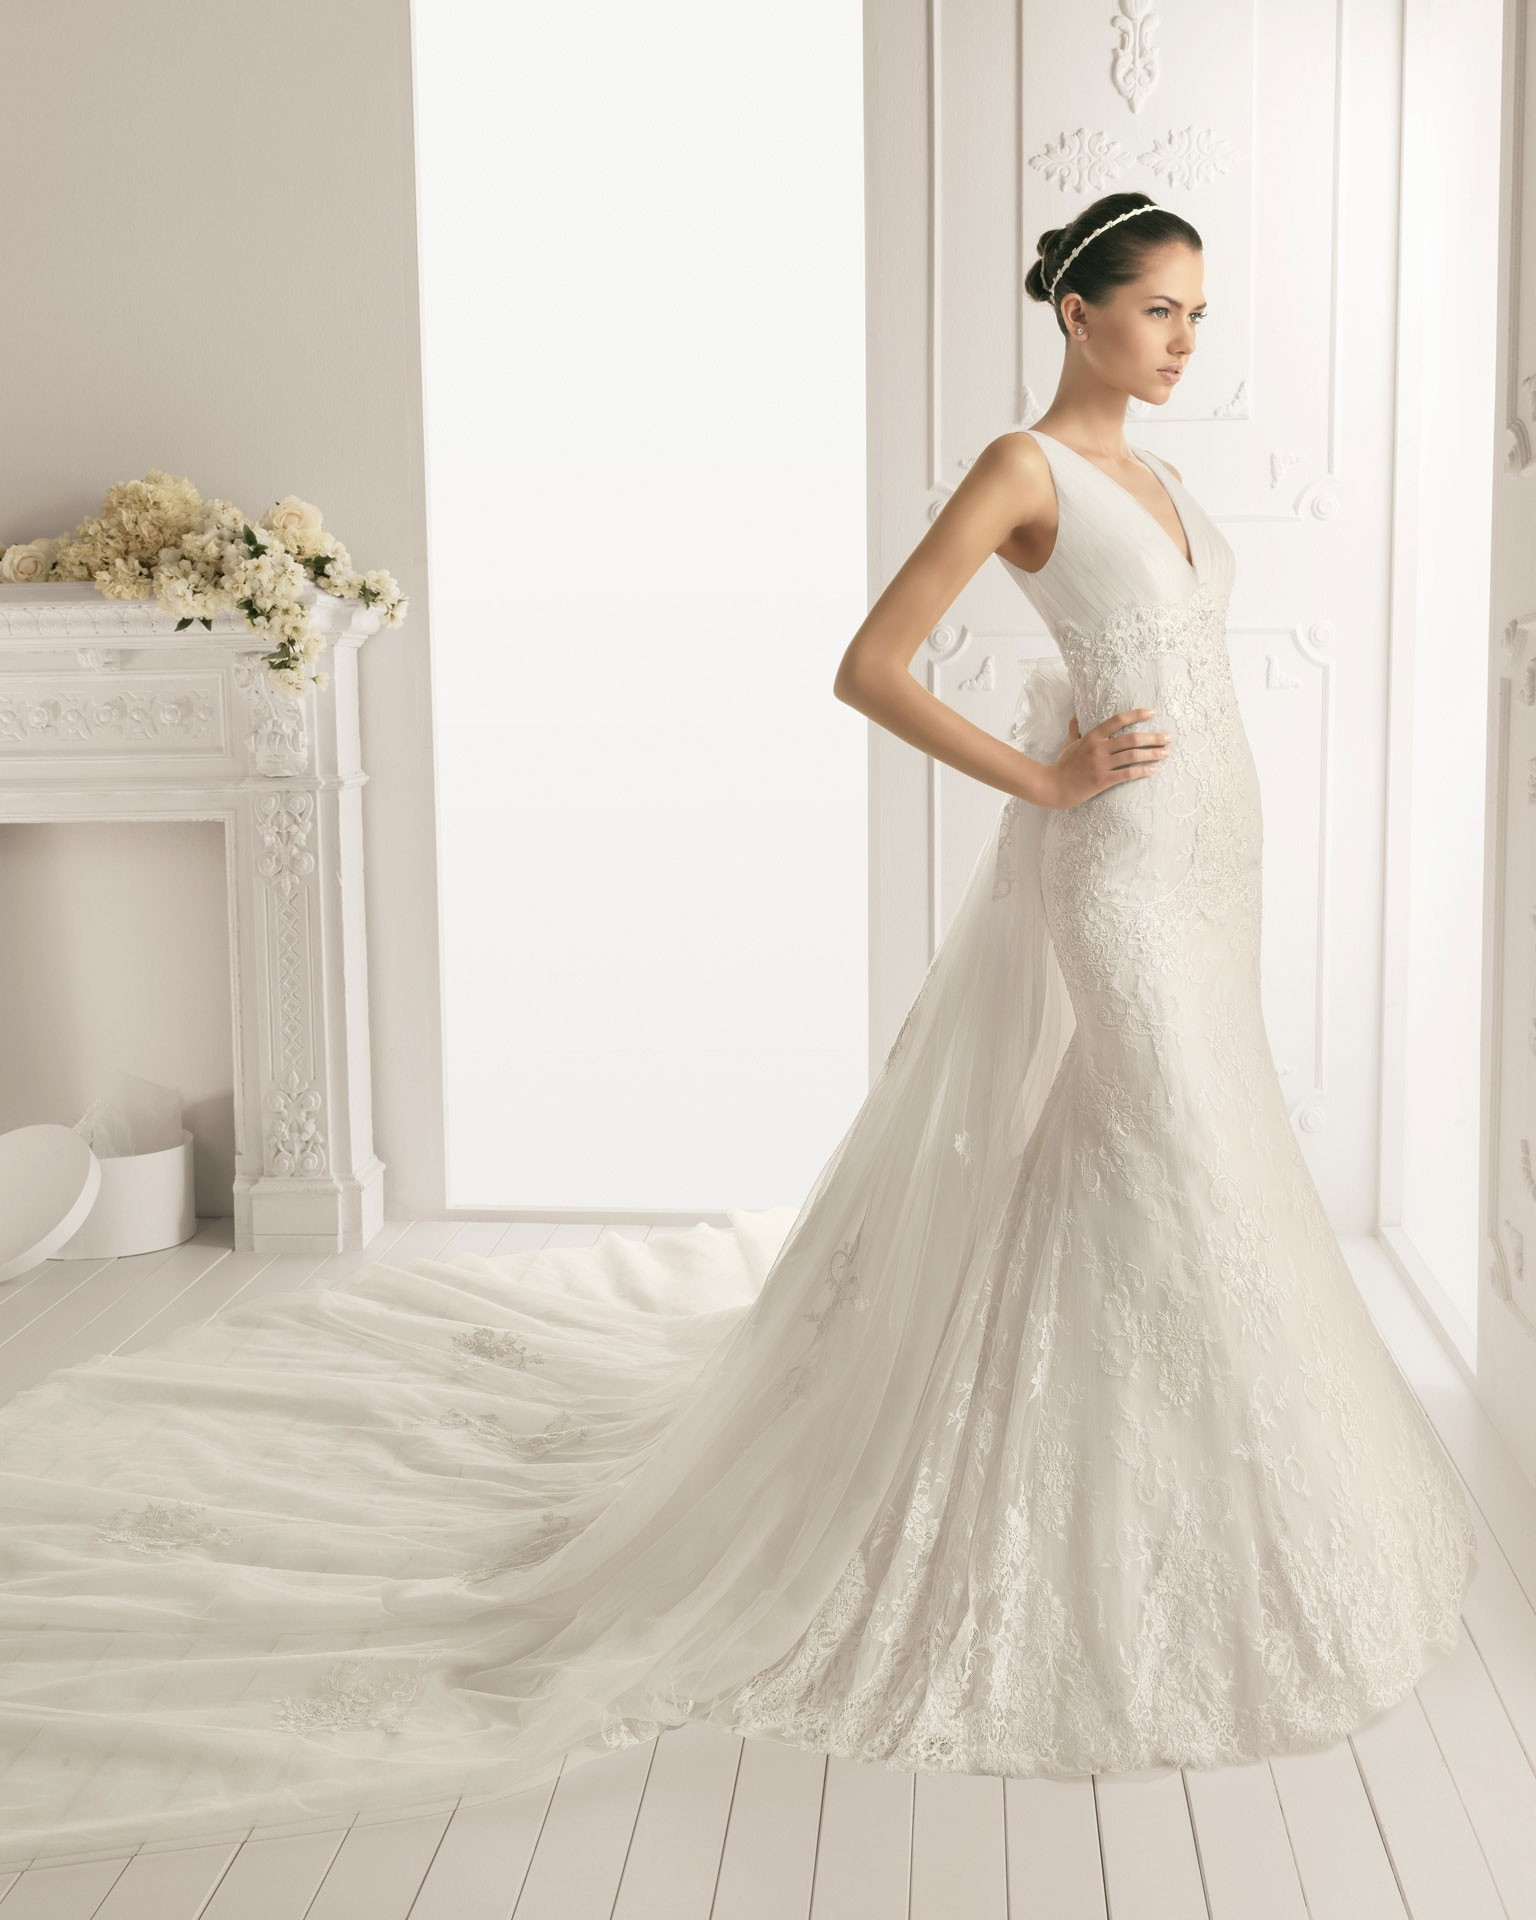 v neckline wedding dress with lace and detachable train detachable wedding dresses Published September 17 at in A Collection of Gorgeous Wedding Dresses with Detachable